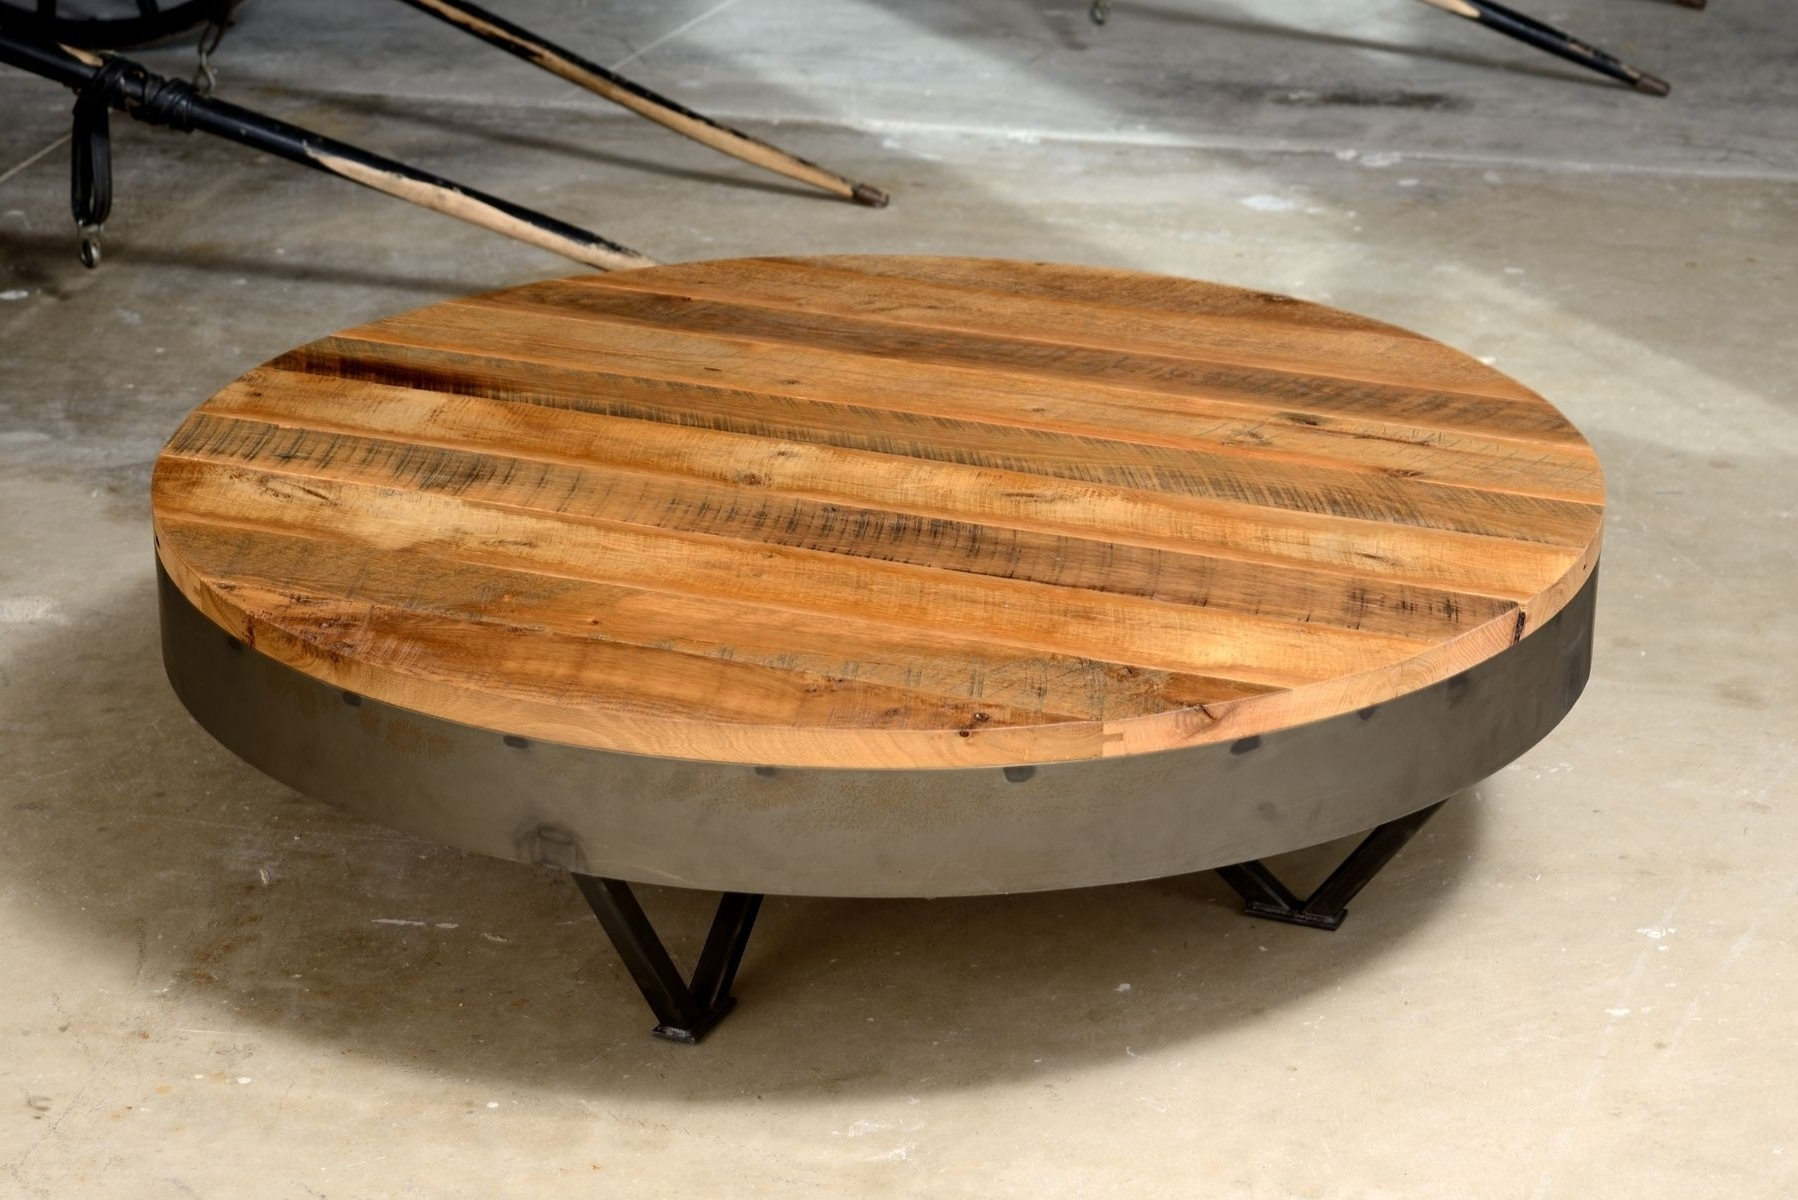 Teak Coffee Table Lovely How To Make A Round Coffee Table Google Within Most Current Round Teak Coffee Tables (View 16 of 20)